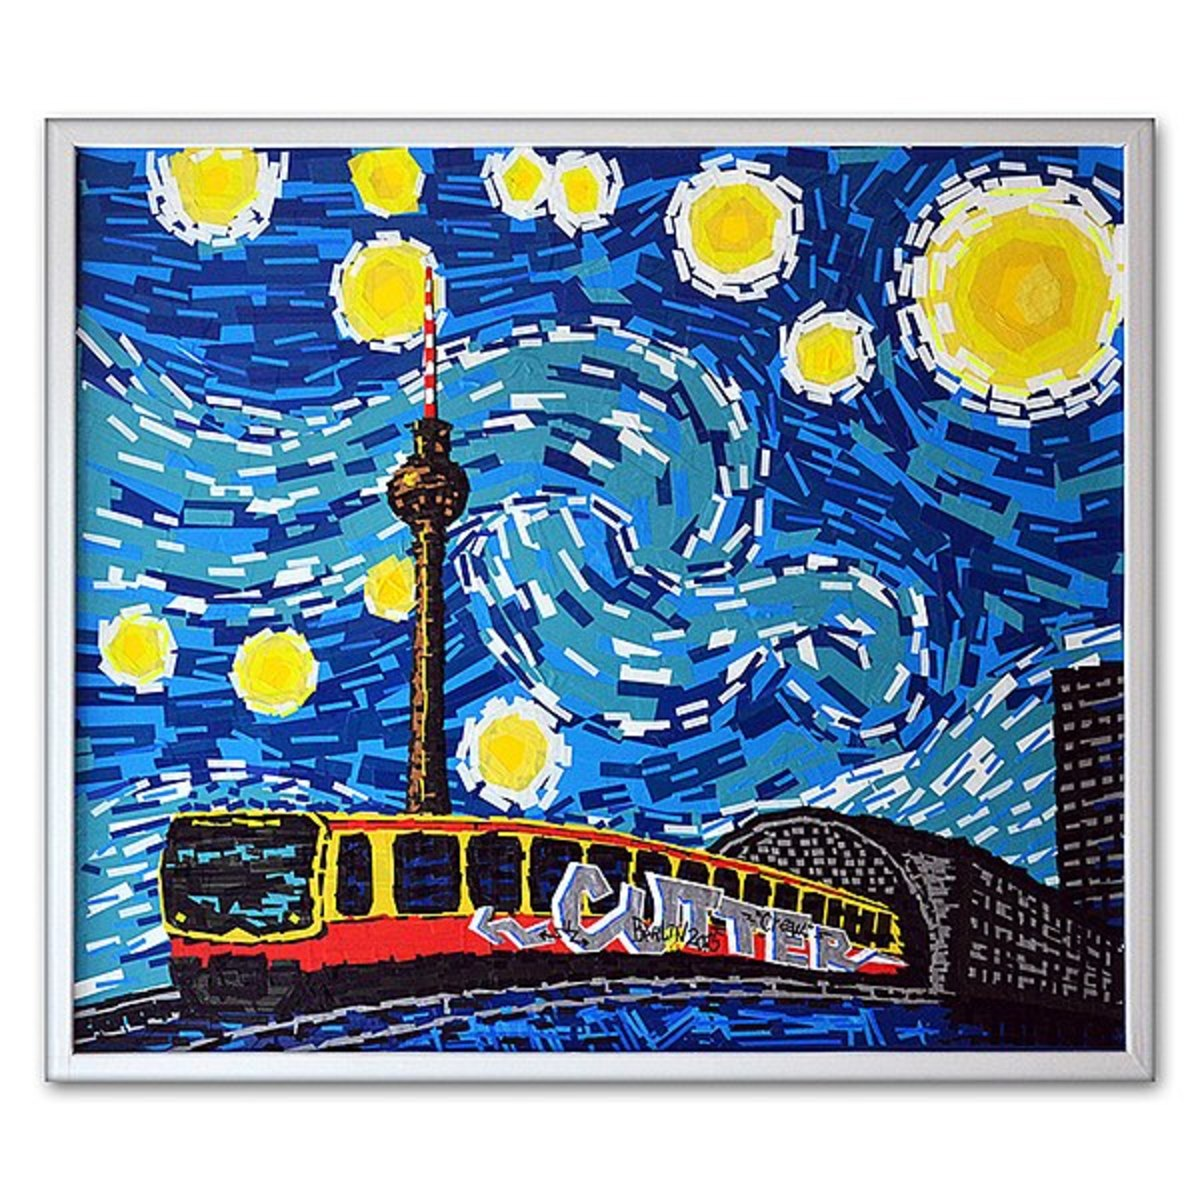 "Berlin starry night""- Tape art by Berlin-based tape artist Slava Ostap. Coloured. Berlin 2014."